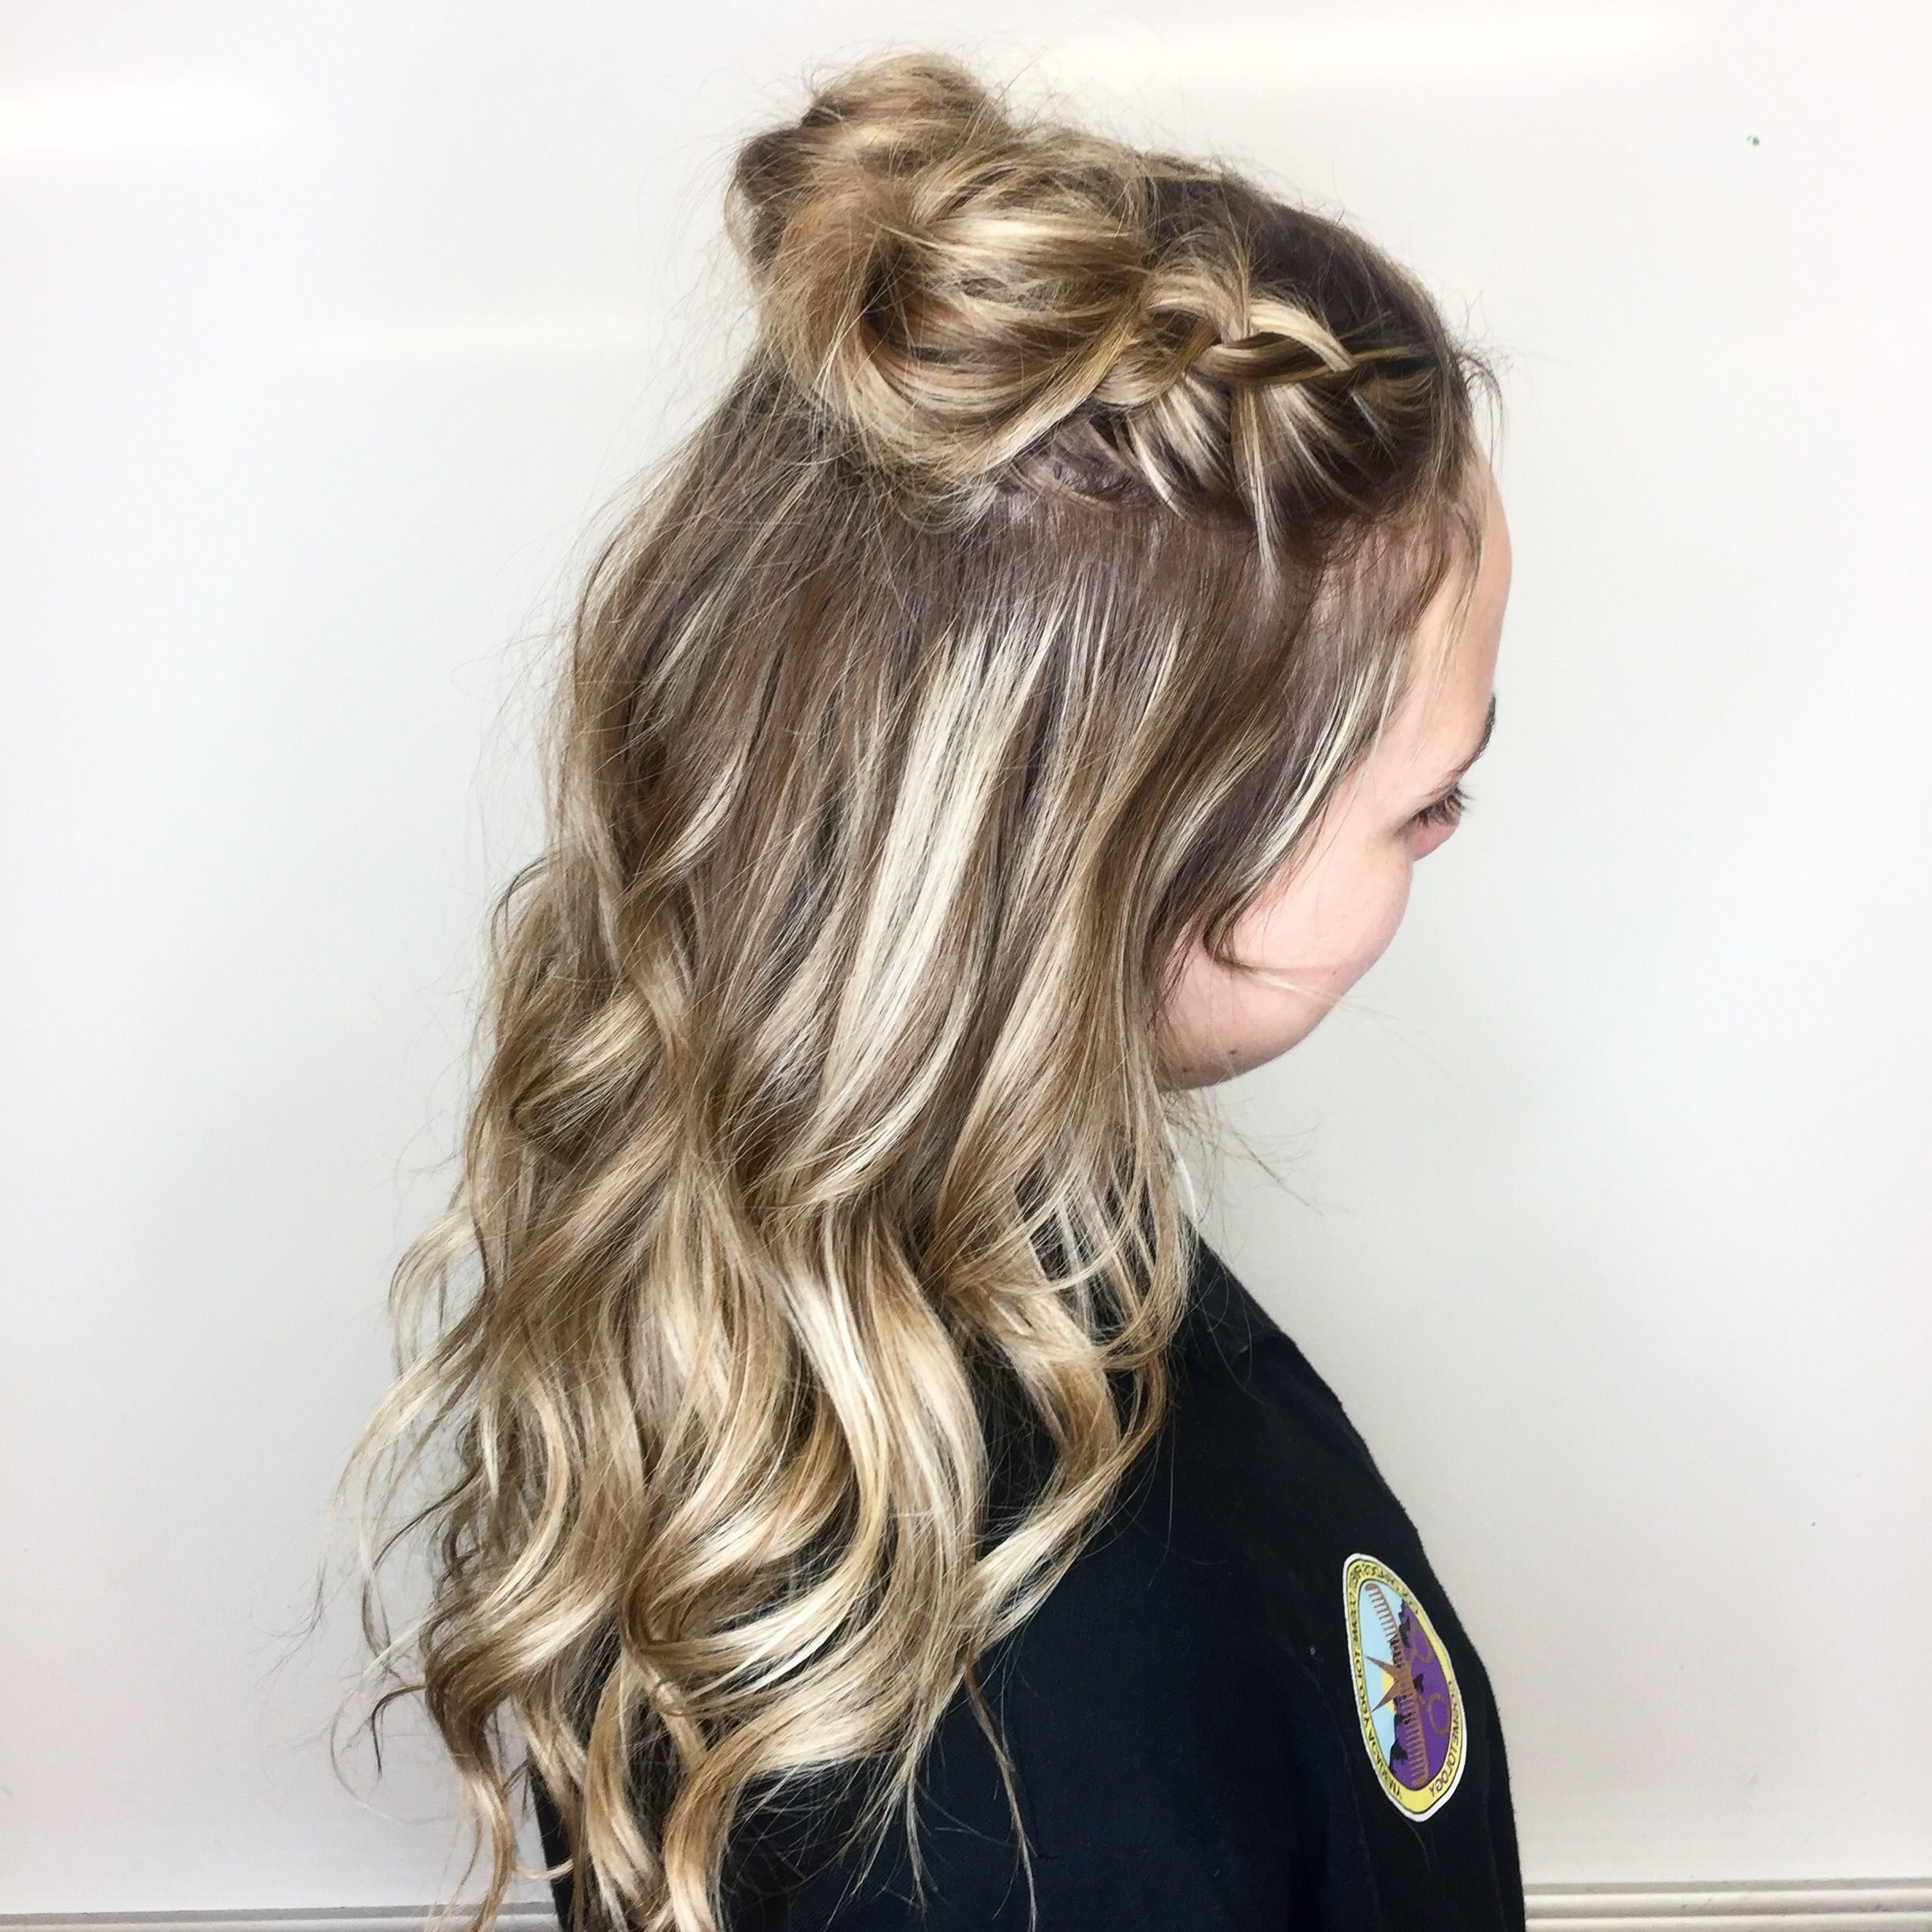 Well Liked Rope Half Braid Hairstyles Pertaining To Dutch Braid Mini Buns Half Up Half Down Hairstyle (View 8 of 20)